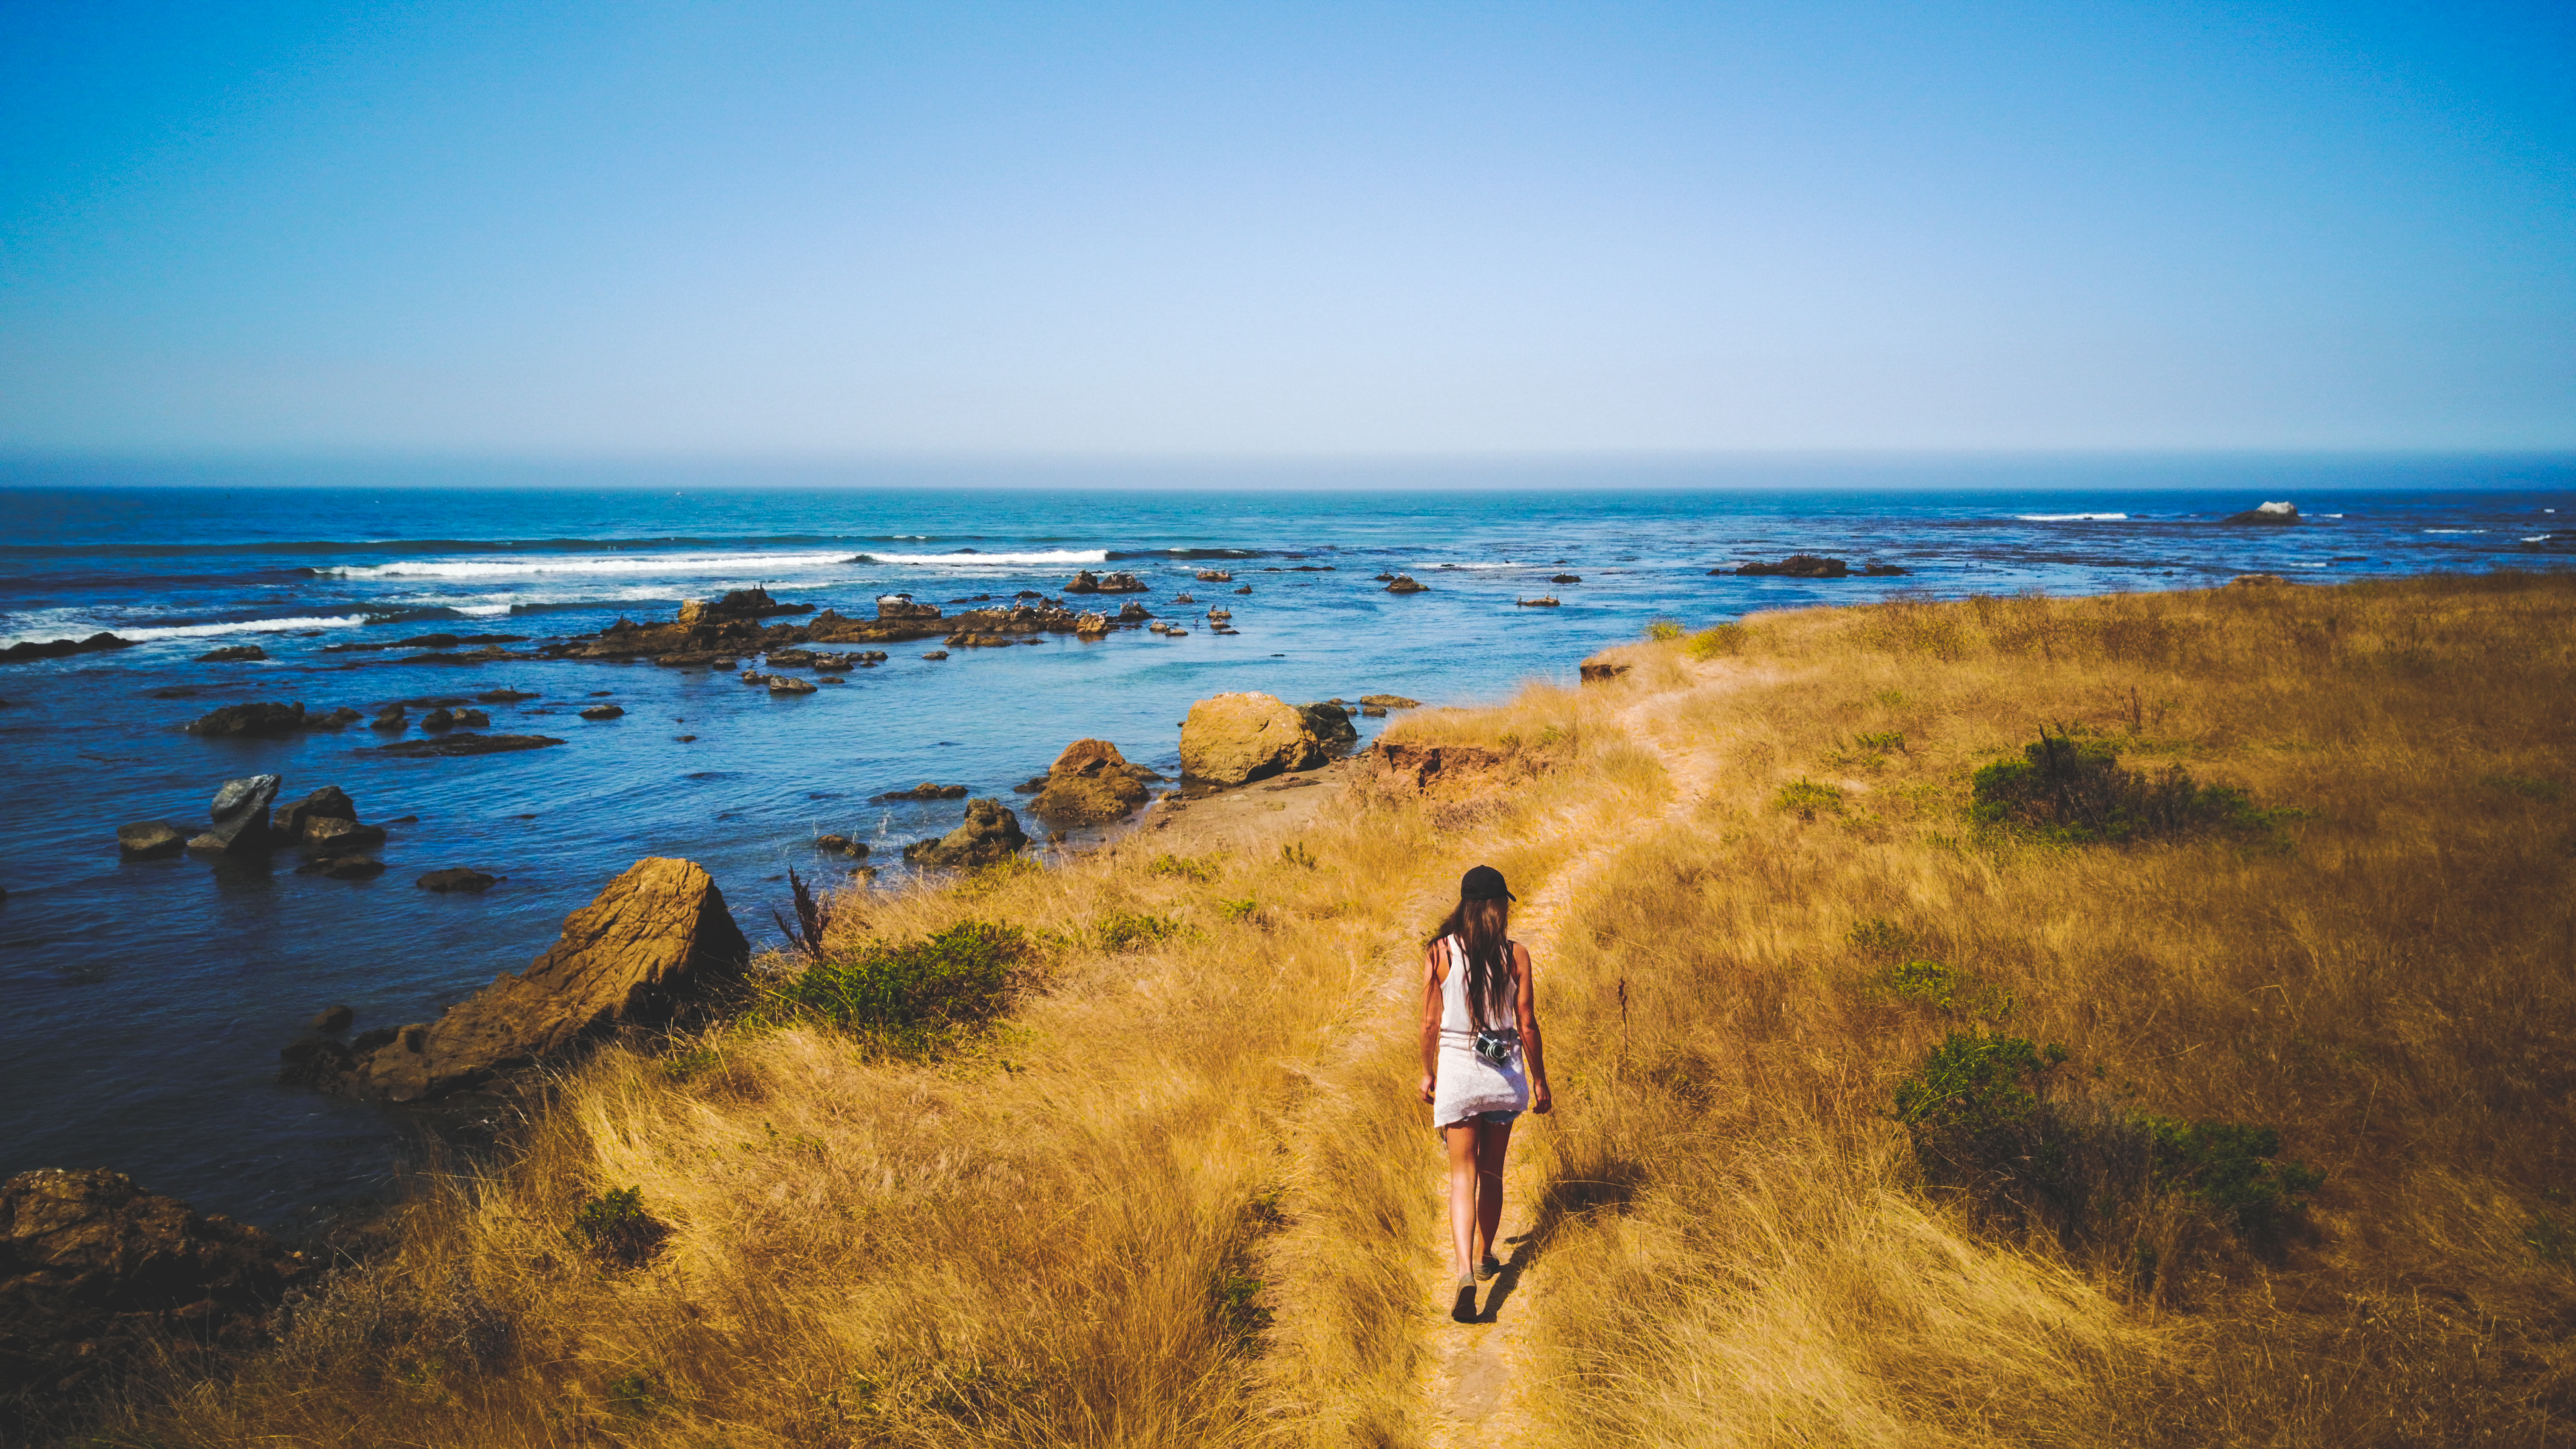 Live Like a Local: 10 Reasons to Fall in Love with San Luis Obispo